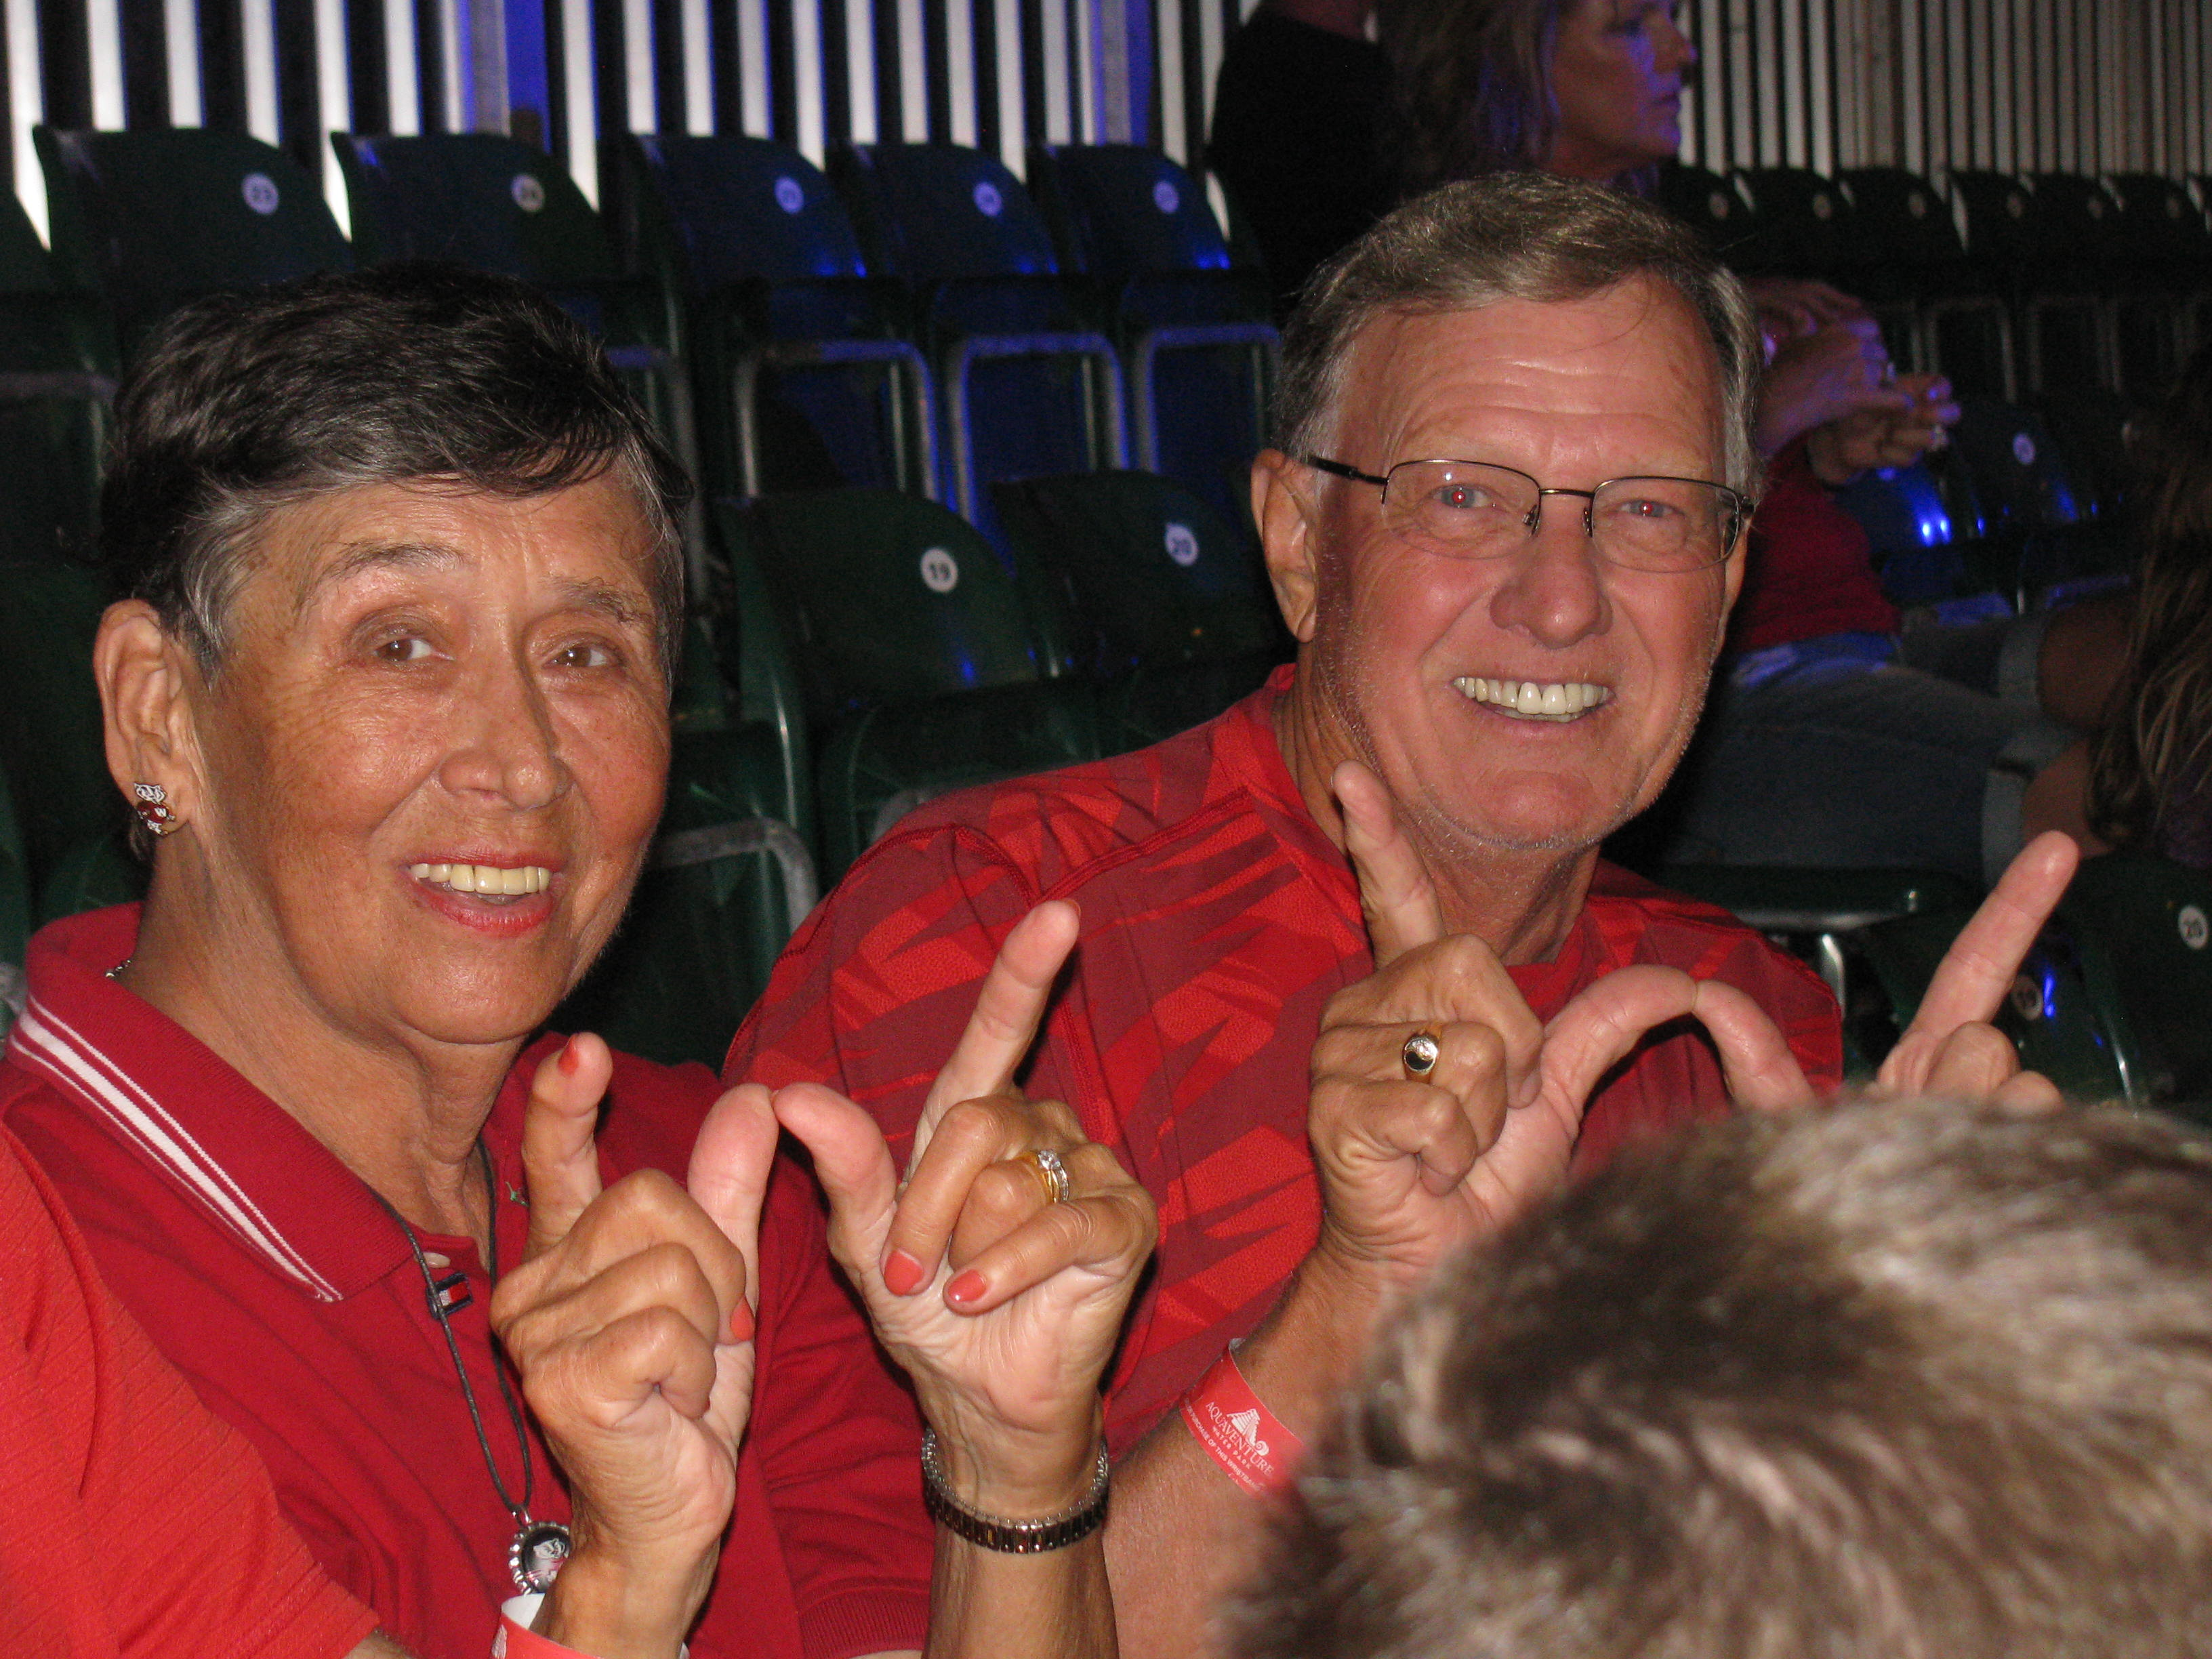 Daryl and Dawn Lund are seen smiling at the Battle 4 Atlantis basketball tournament in 2014. Photo Courtesy of Daryl Lund.